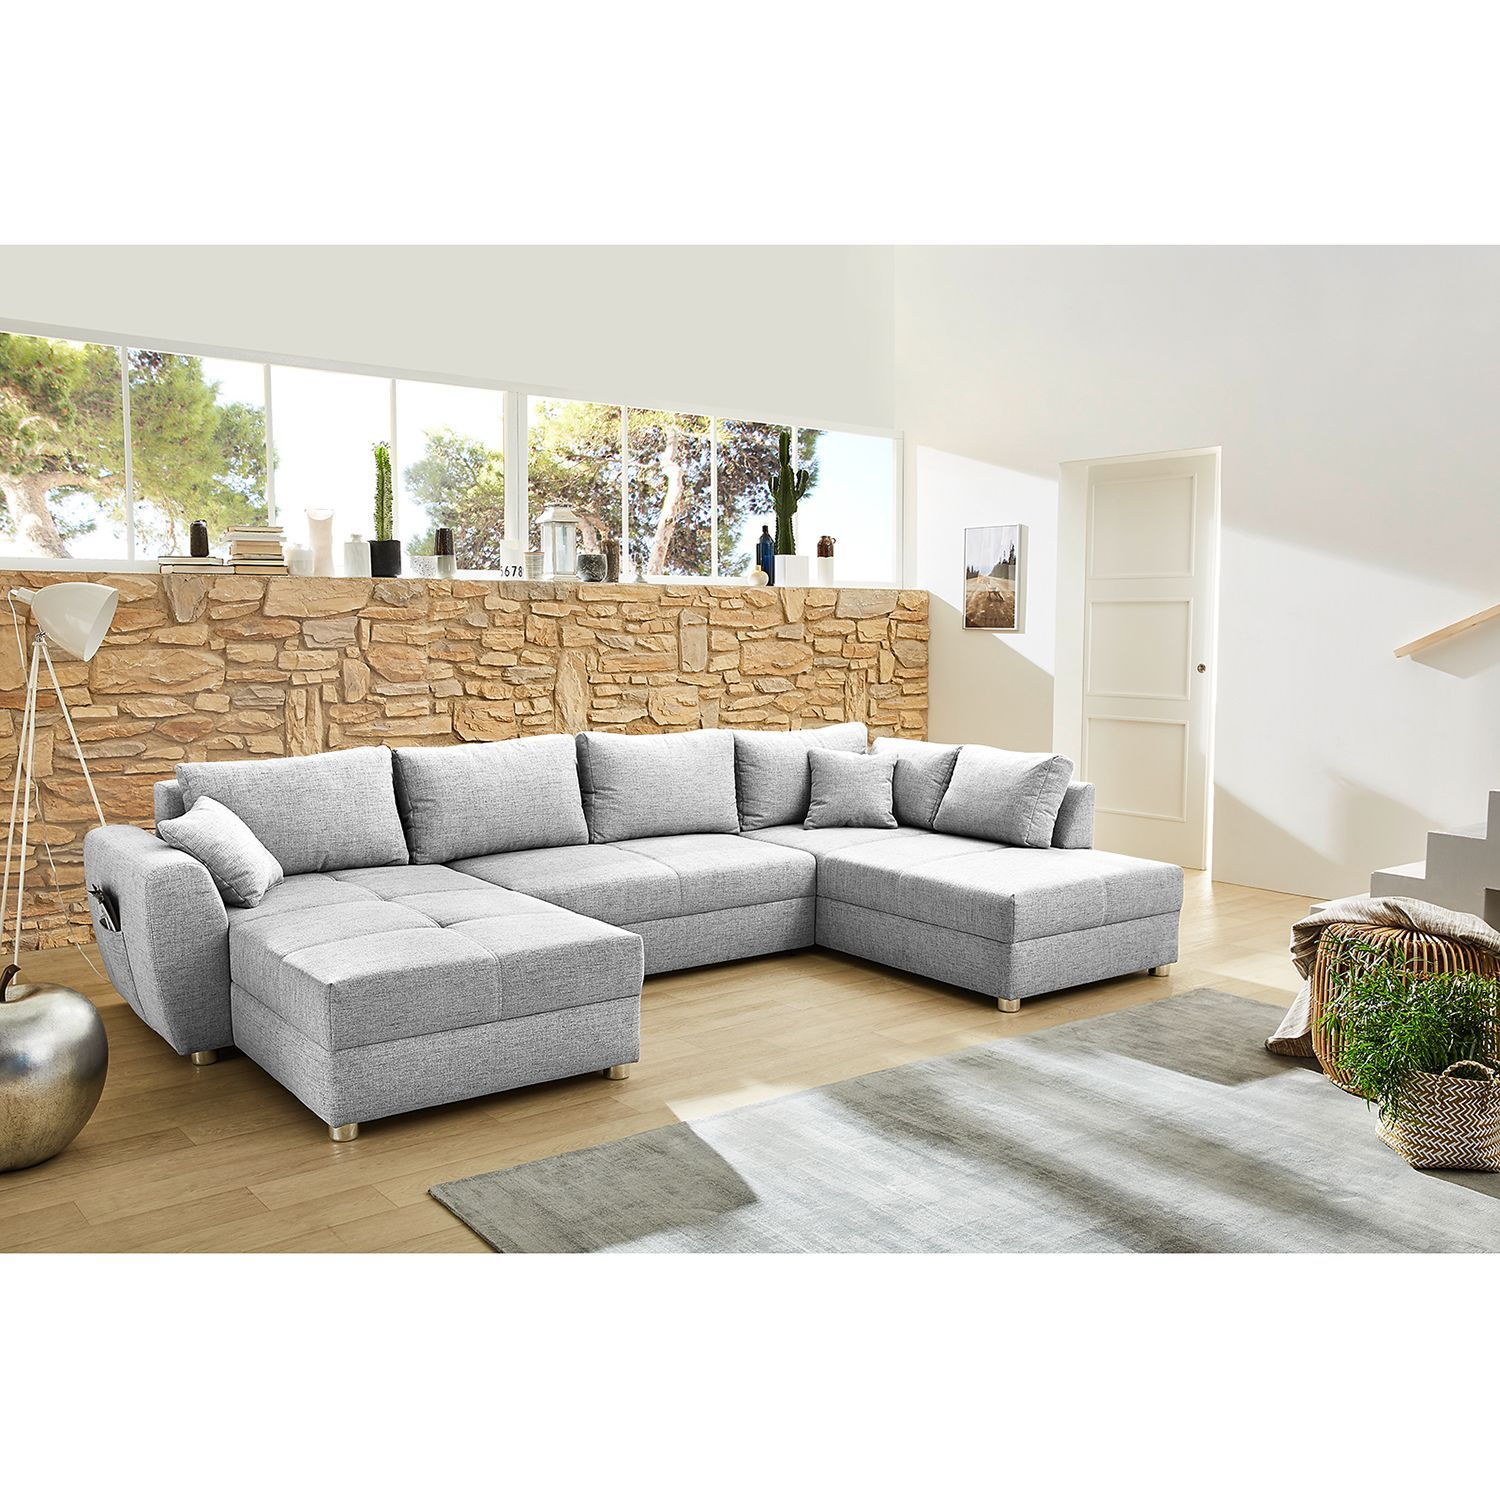 Wohnlandschaft Delicias Wohnlandschaft Delicias Products Sofa Furniture Outdoor